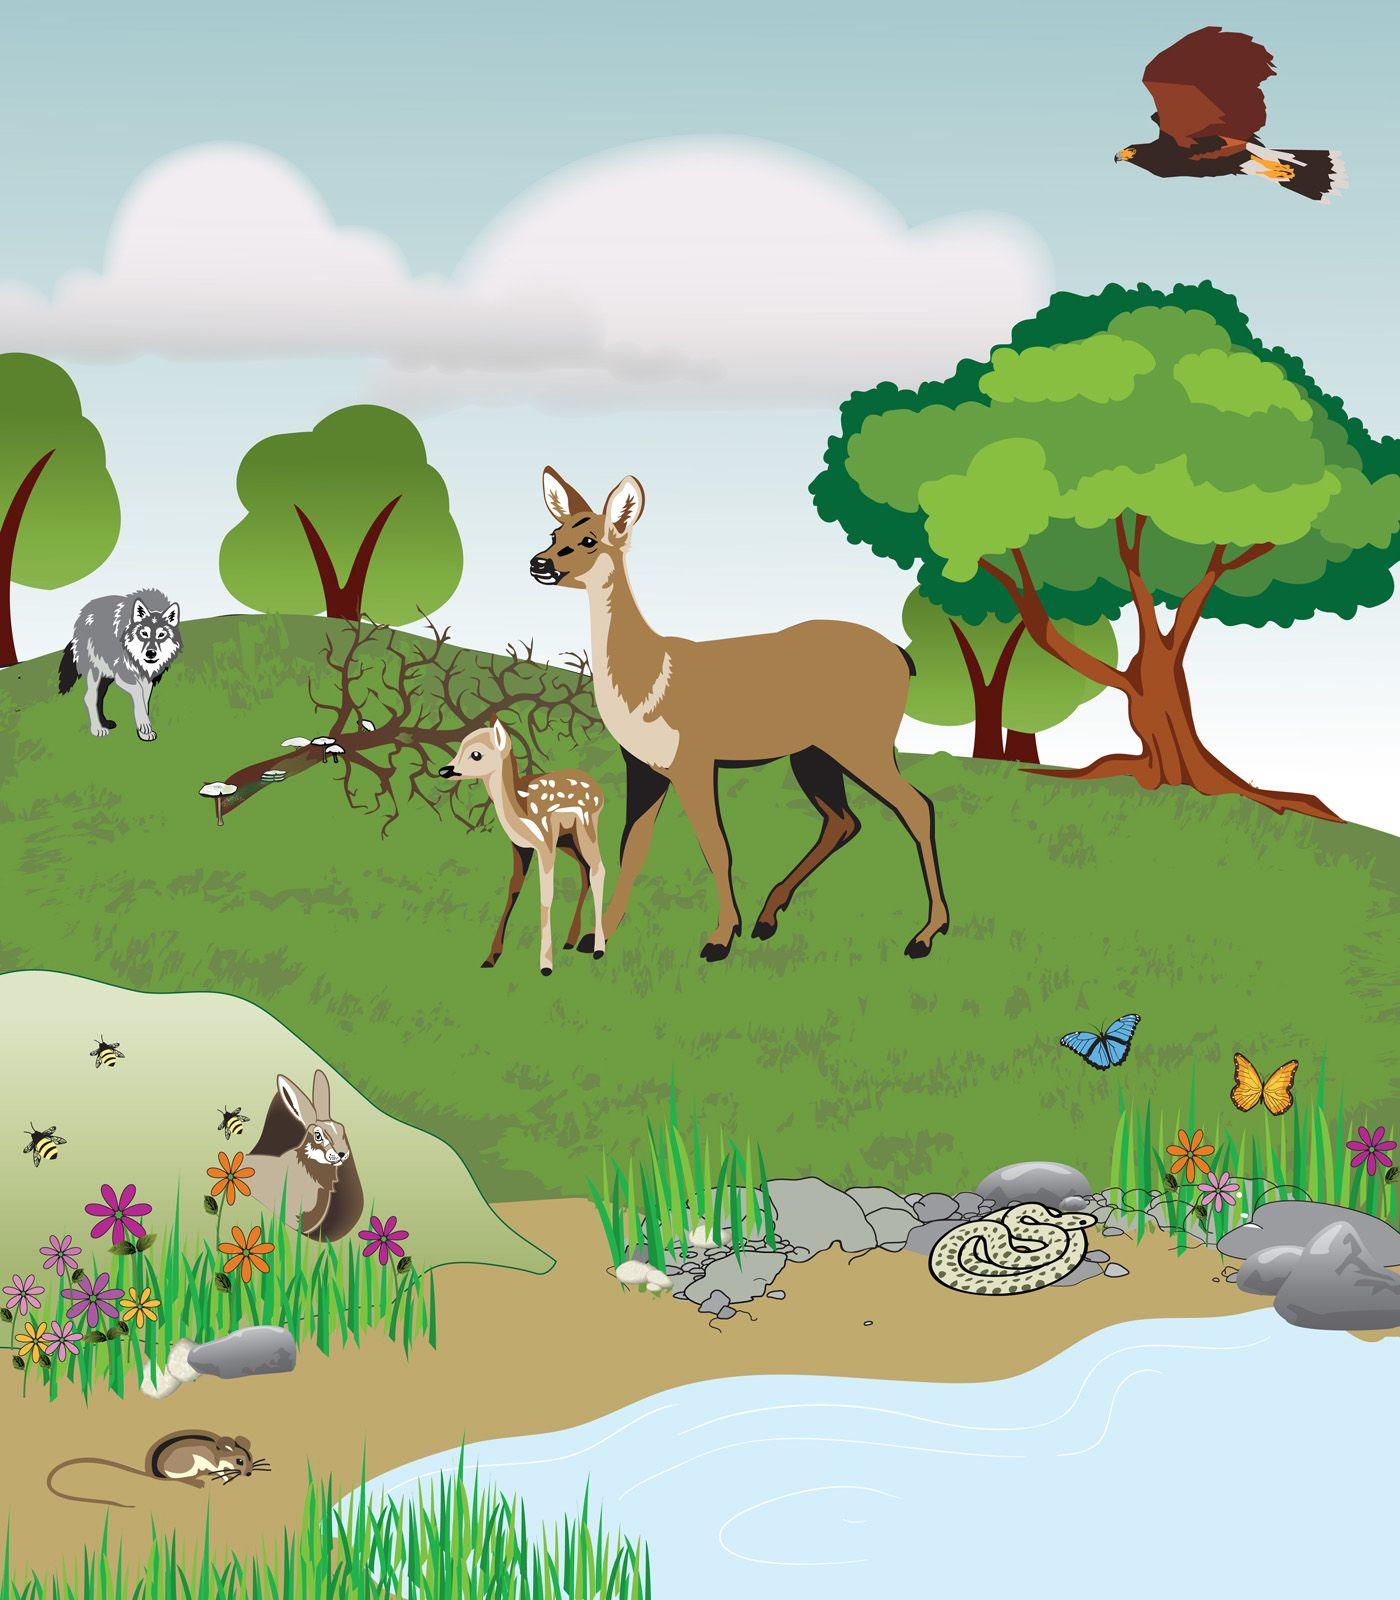 Characteristics of life Interactions in Ecosystems  Project Share  ClassroomScience  Science